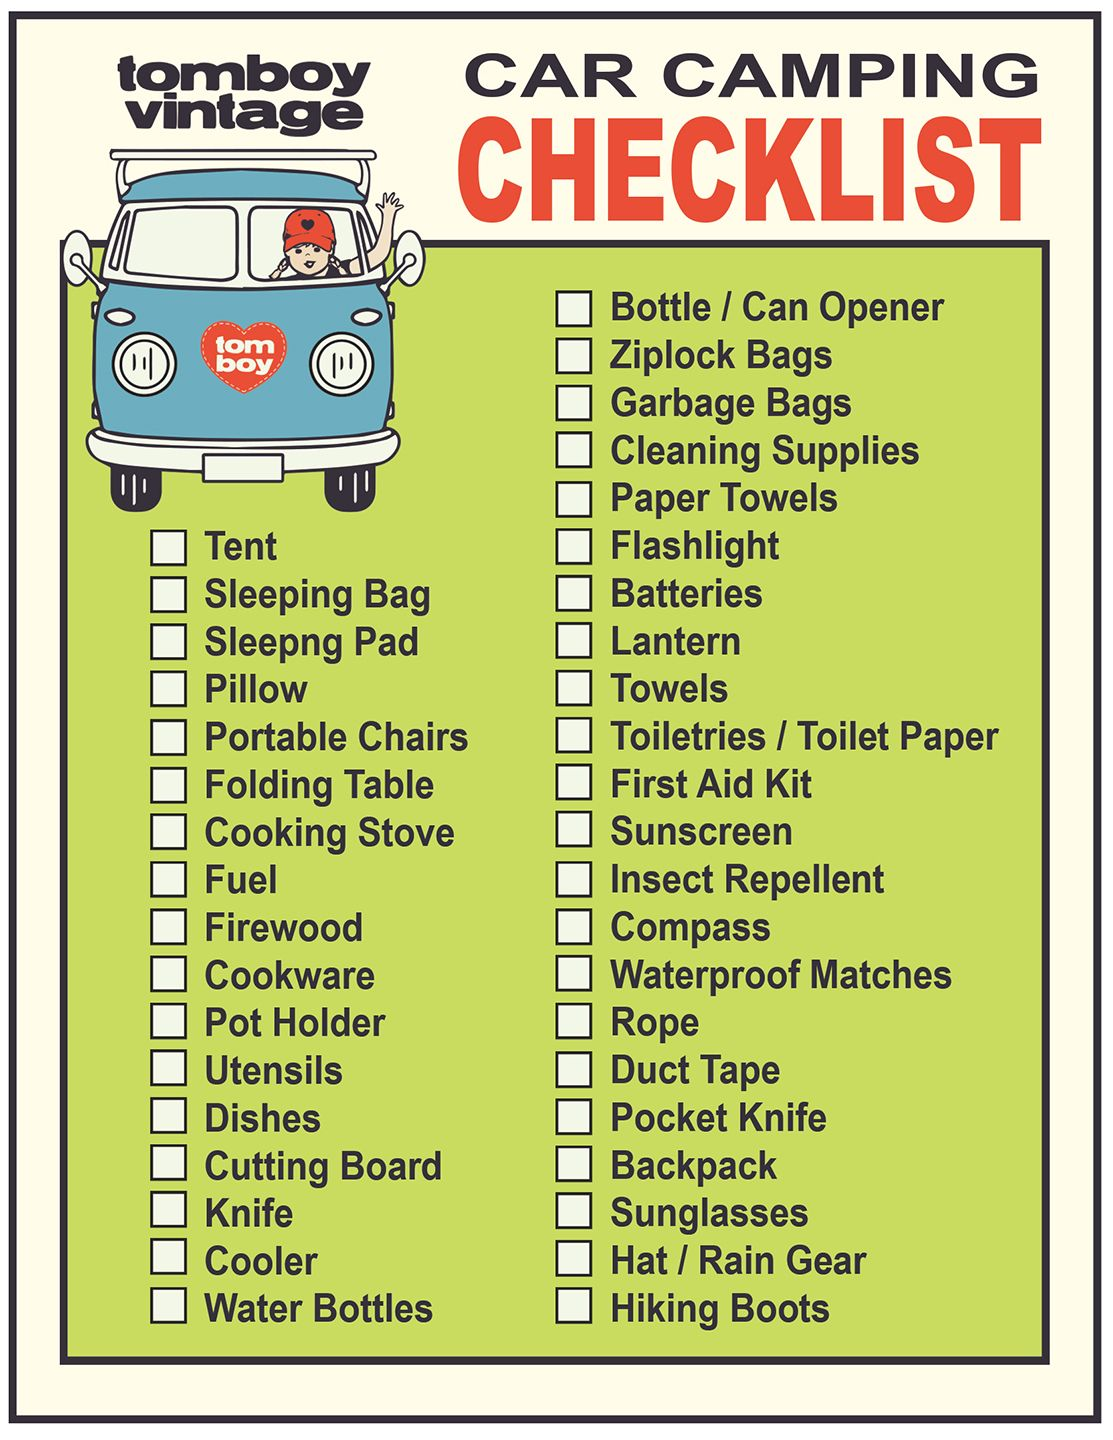 Car Camping Checklist  Camping Checklist Camping List And